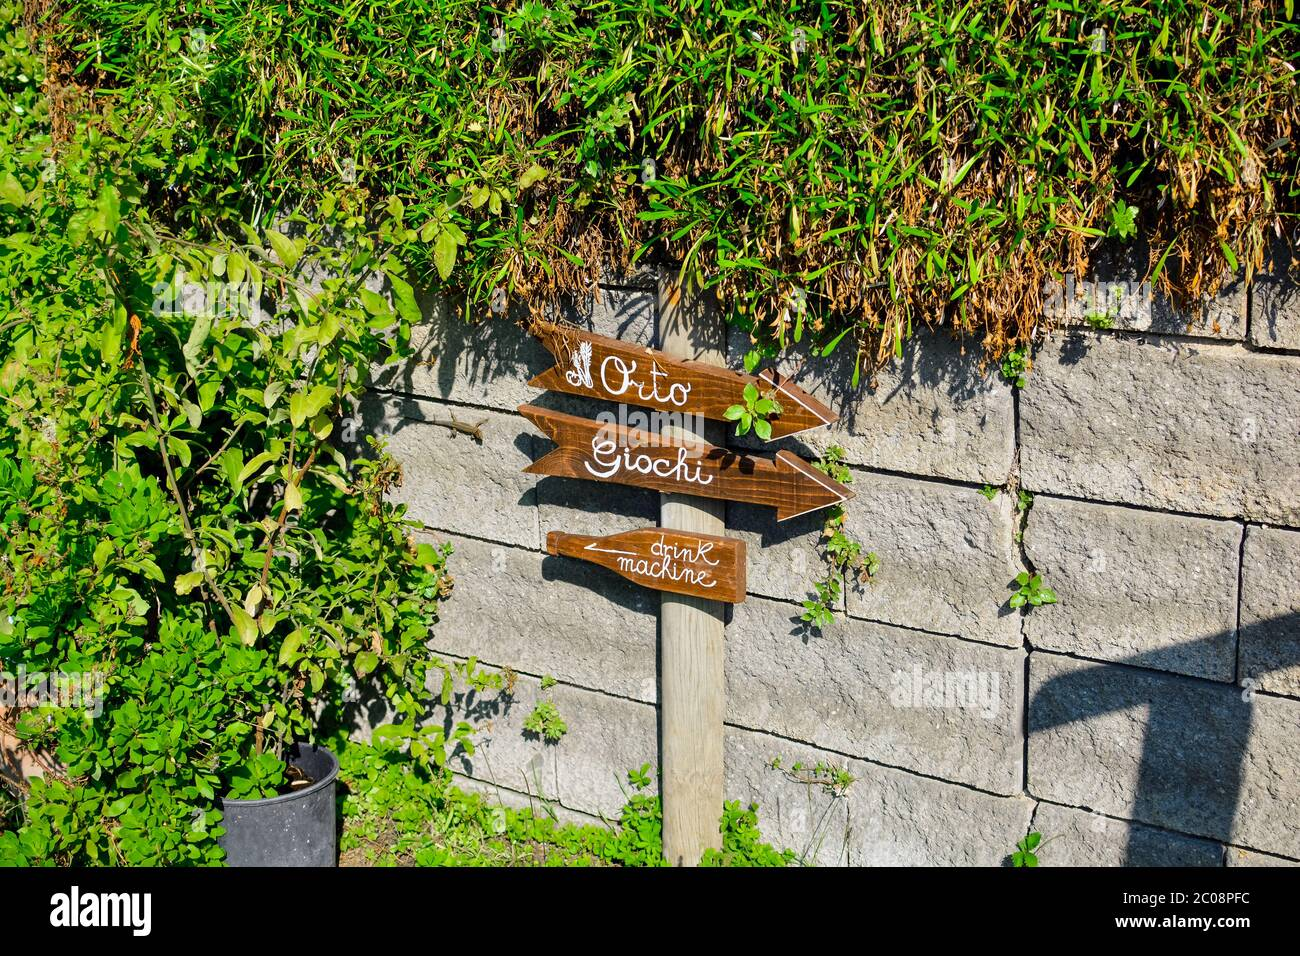 A handmade wooden sign with a lizard nearby in an Italian bed and breakfast points to games, garden or drink machine in Monterosso al Mare, Italy Stock Photo